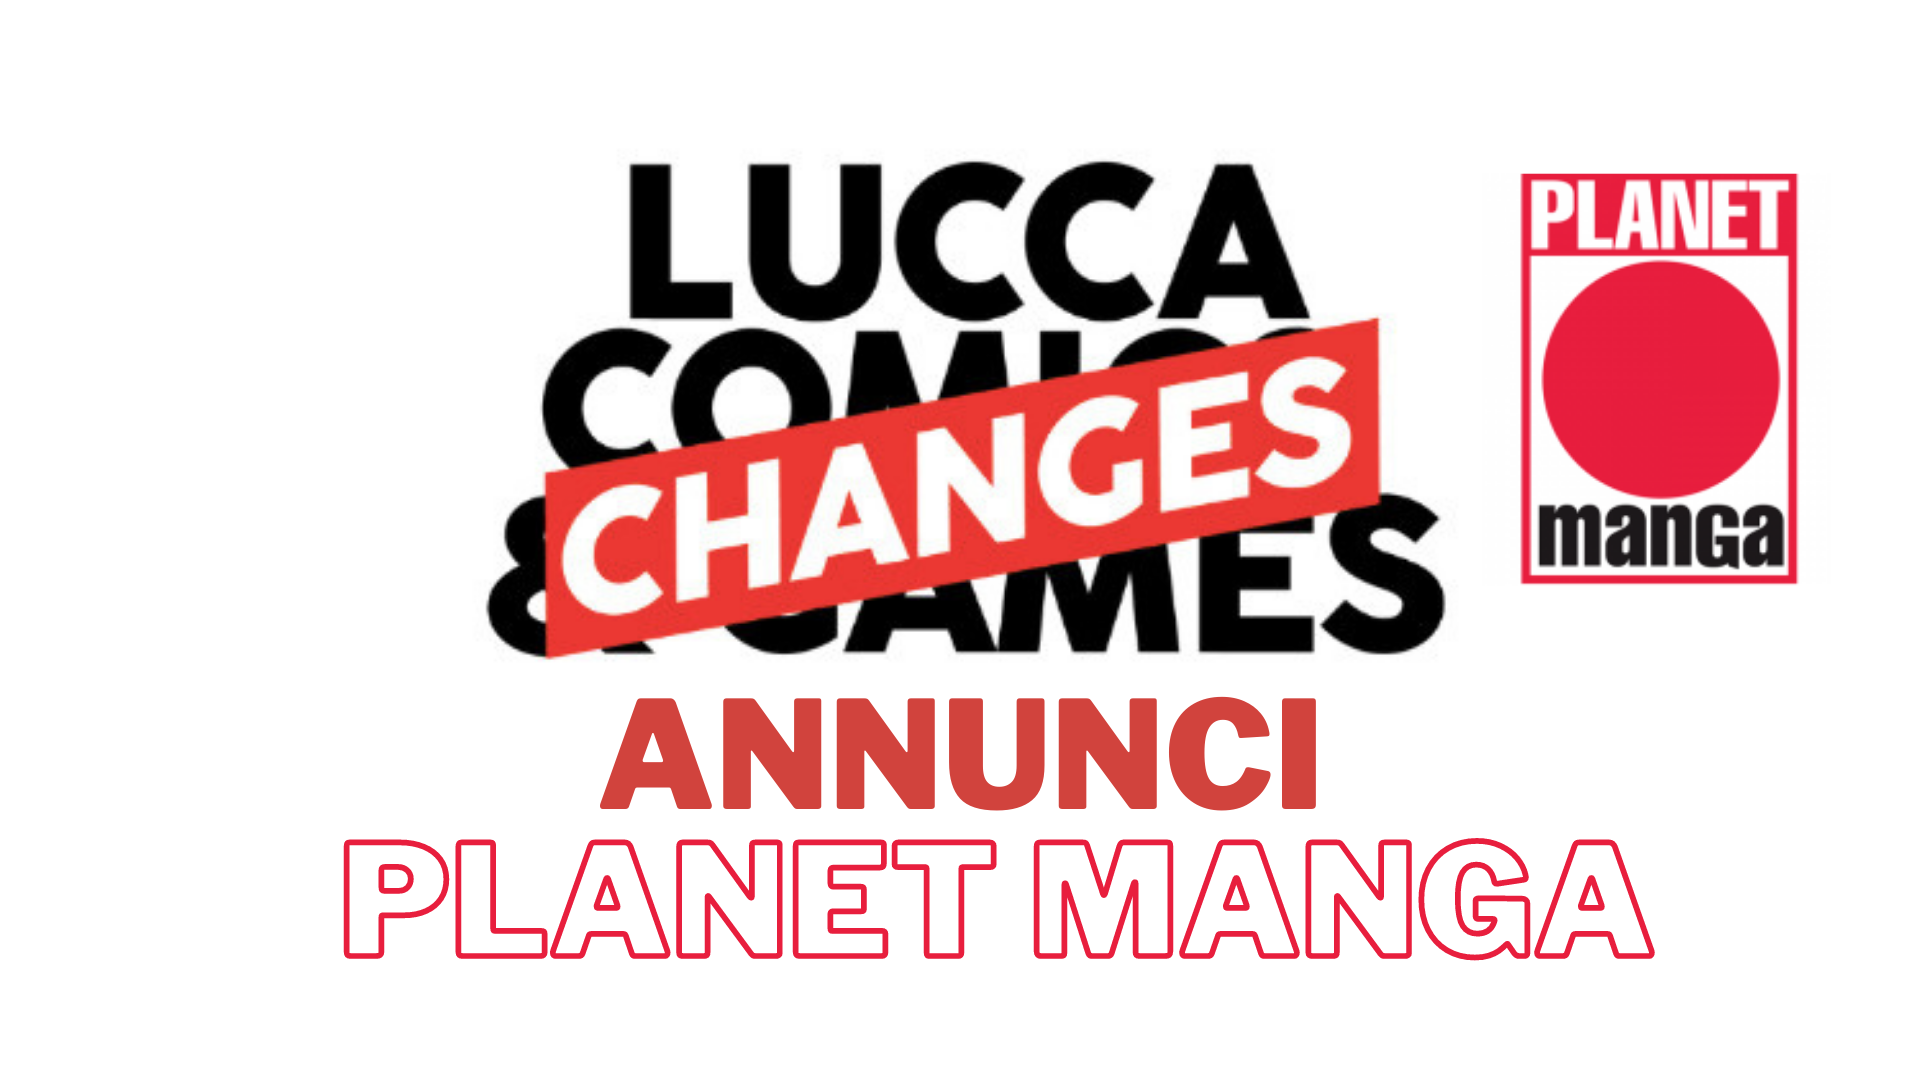 Lucca Changes Planet Manga